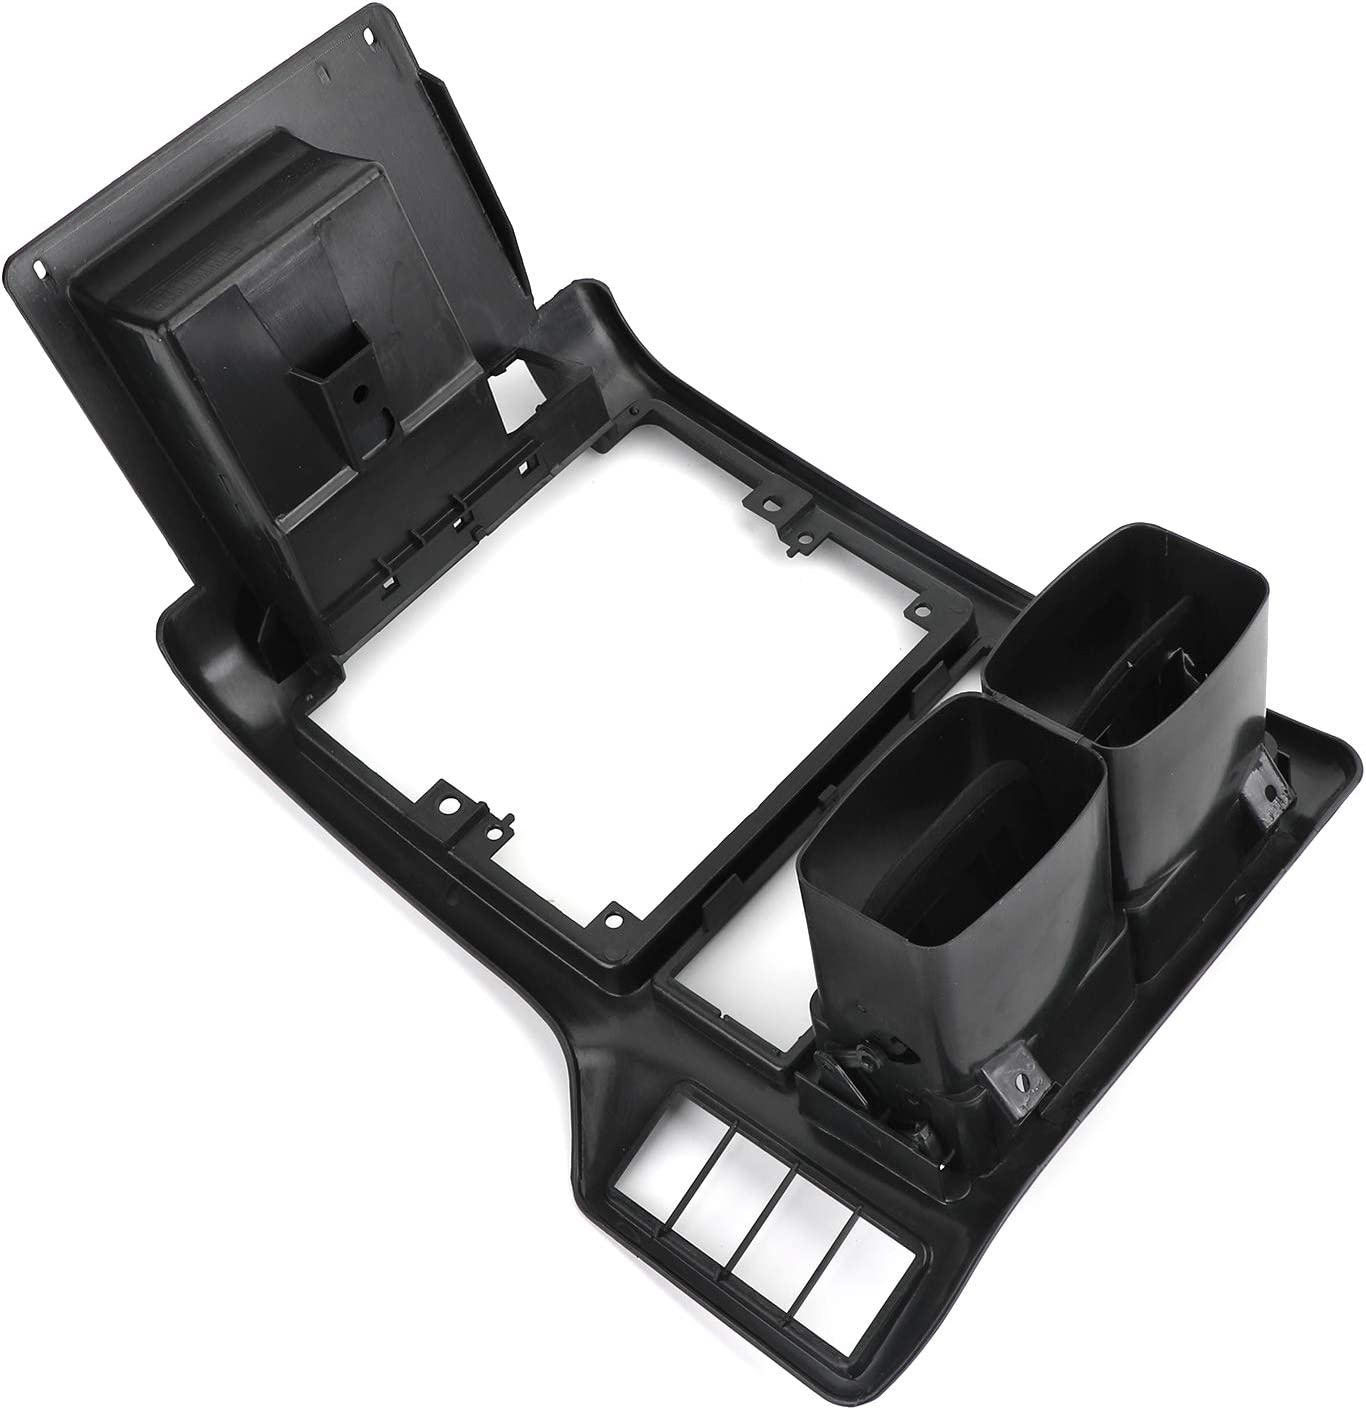 Areyourshop Center Console Grill Dash AC Air Vent for Volks-wagen 1994-1999 6N1 858 071 A